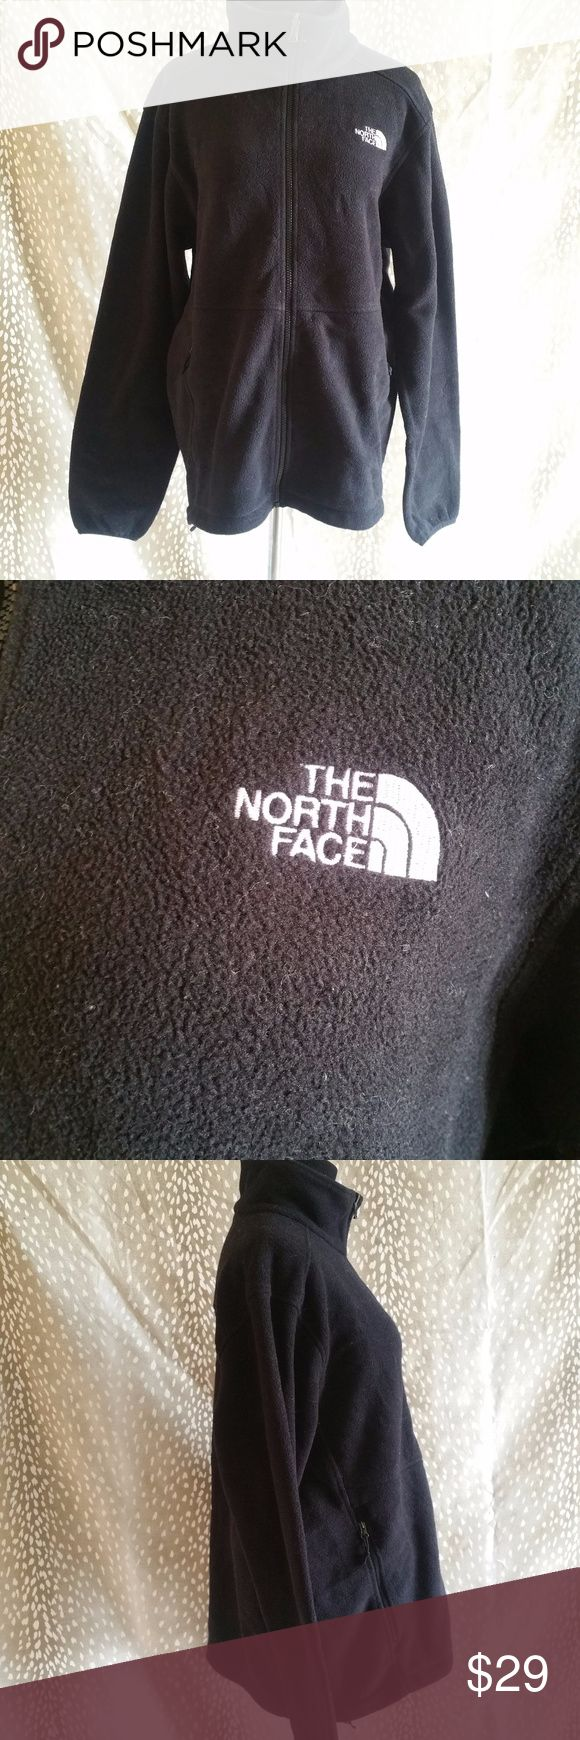 The North Face Men's Jacket Zip Up Size L Style: Men's Zip Up Jacket ( OW 02 - 686)  Brand: The North Face   Material: 100% Polyester   Measurements: Length 25 Pit To Pit 23  Color: Black   Size: Large   Condition: Great   Country Of Manufacture: Mexico The North Face Jackets & Coats